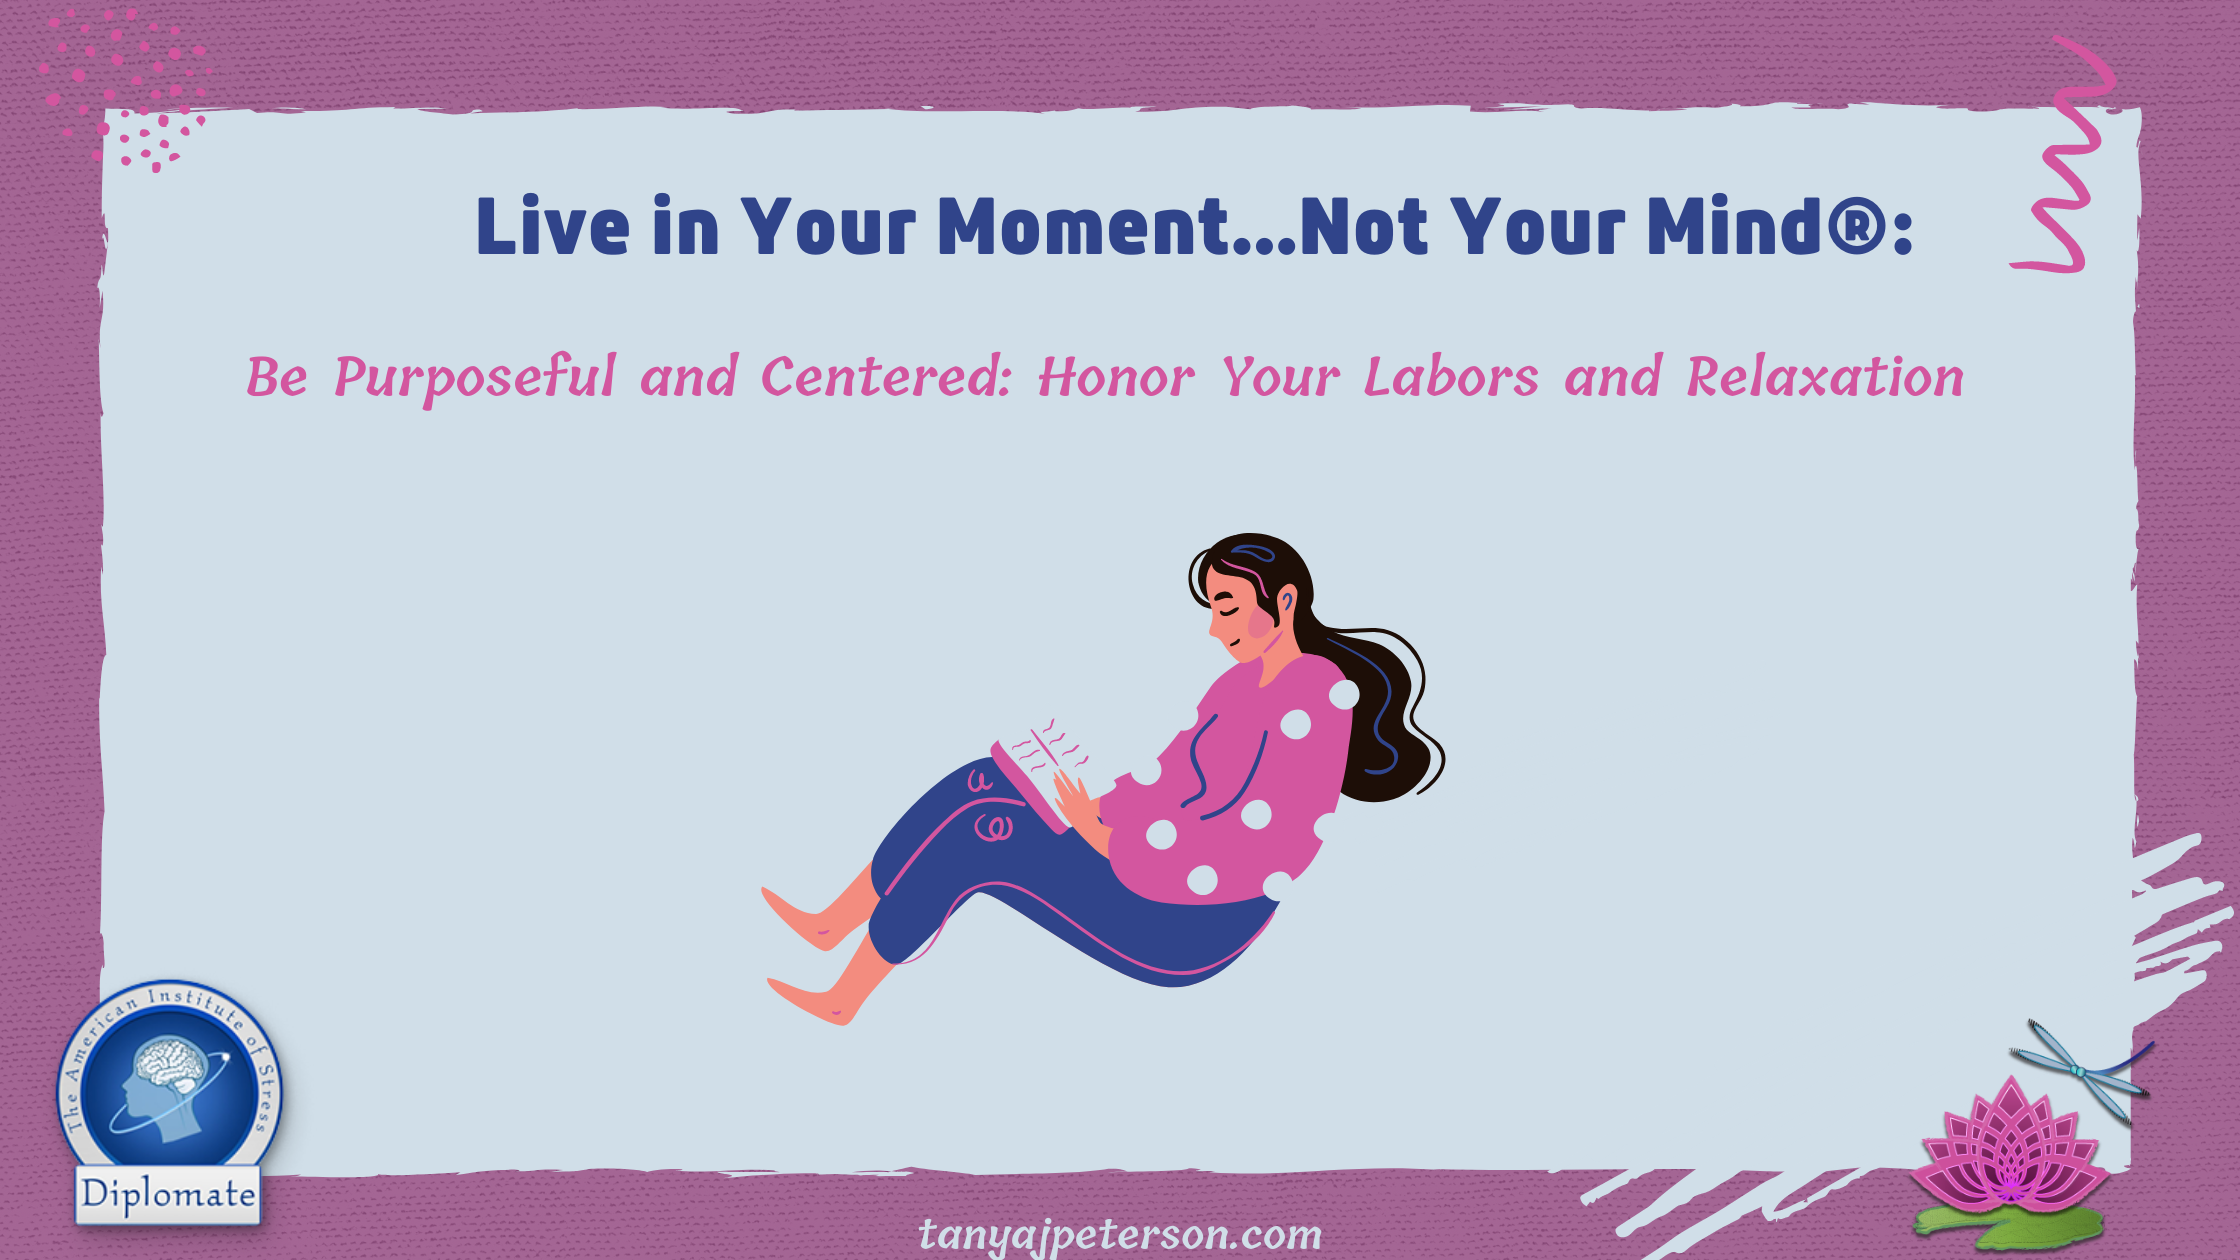 Pausing To Reflect On All That You Do, Both To Accomplish Tasks And Relax, Can Help You Move From Stressed To Centered And Purposeful.